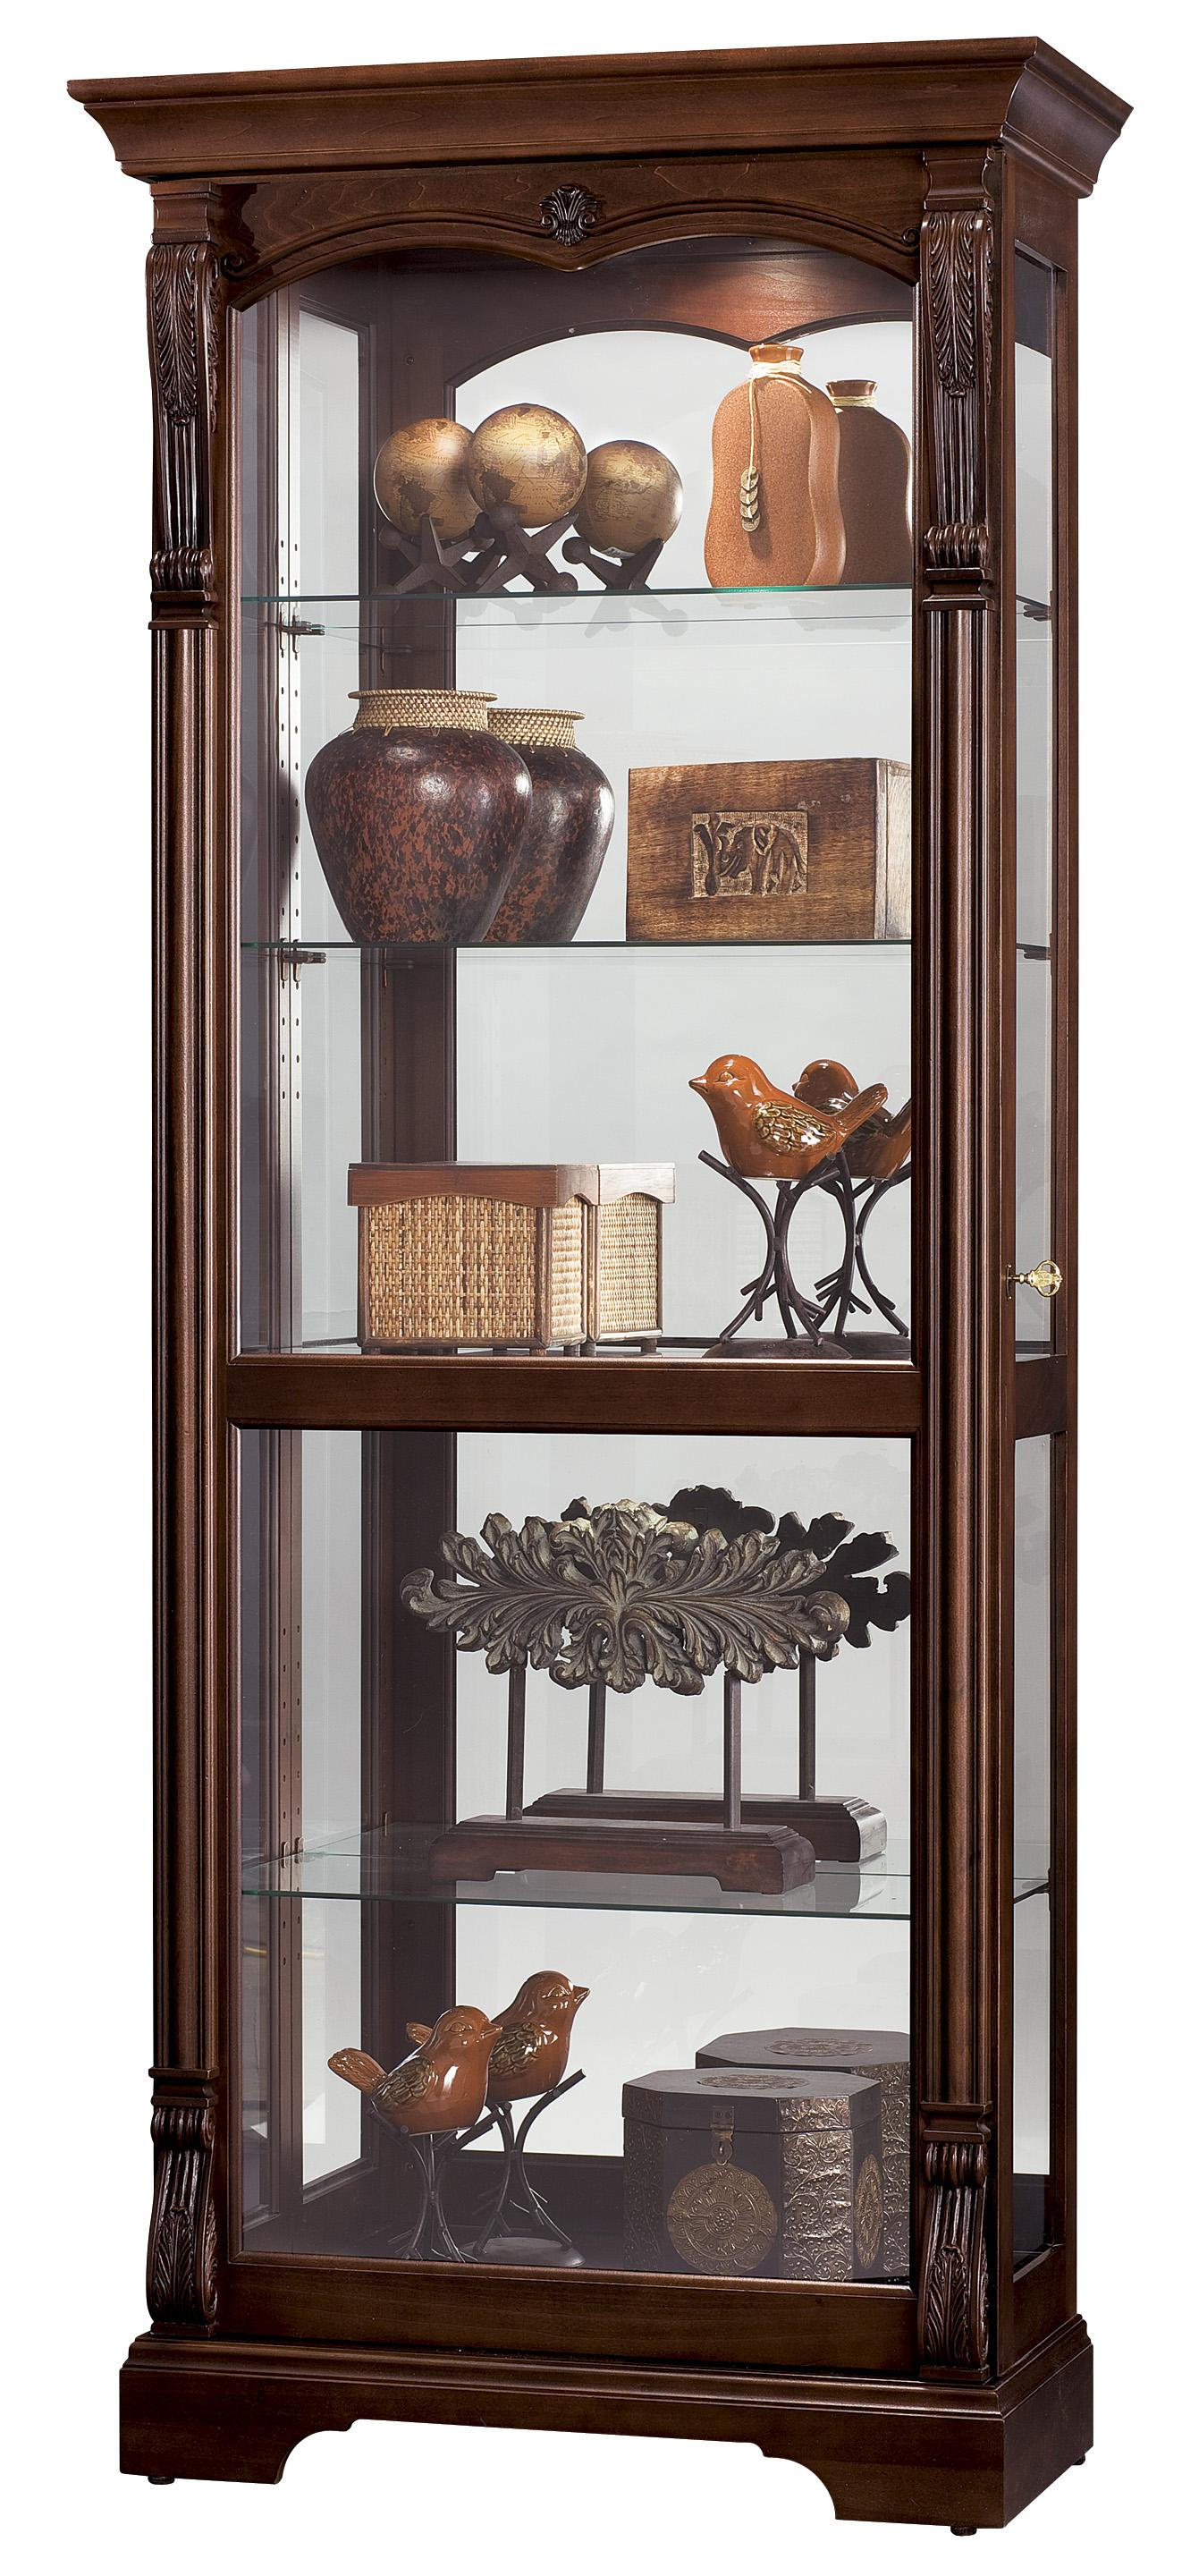 Furniture Trend Designs Curios Bernadette Display Cabinet by Howard Miller at Mueller Furniture